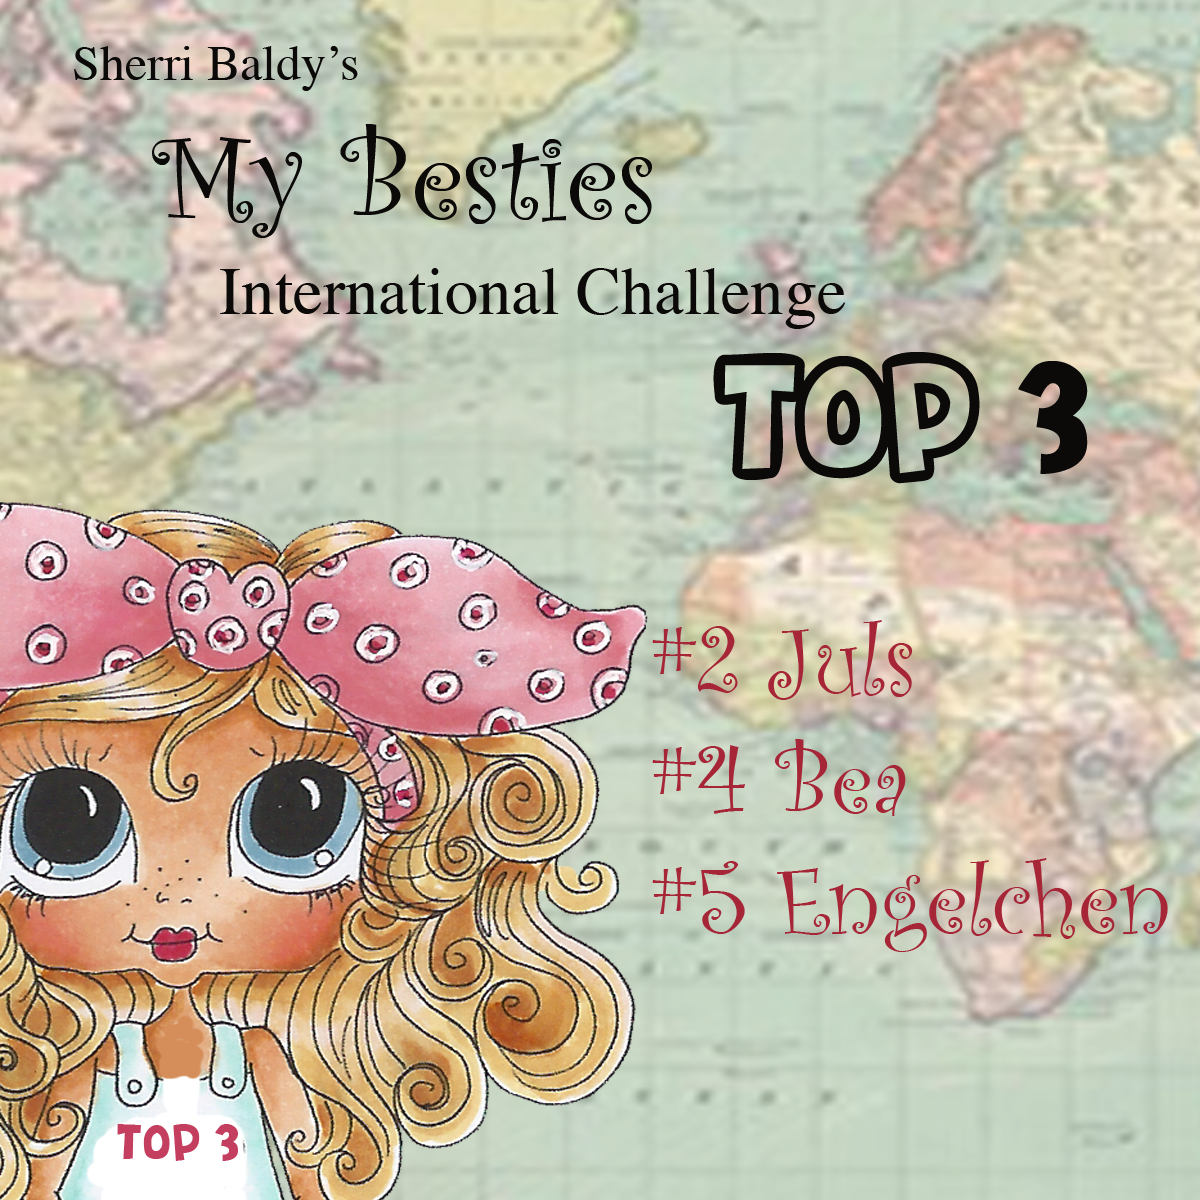 In Top 3 #1 My Besties International